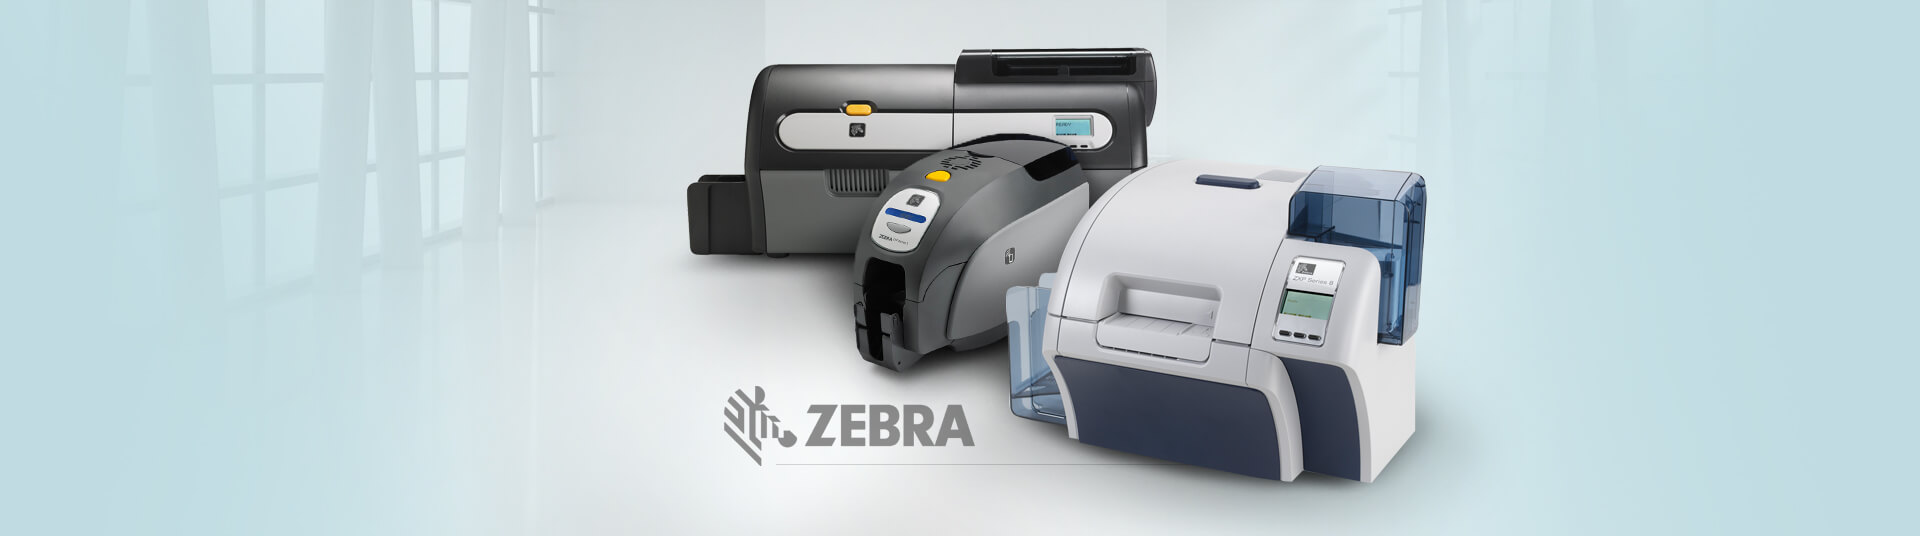 Zebra ID Printing Machine